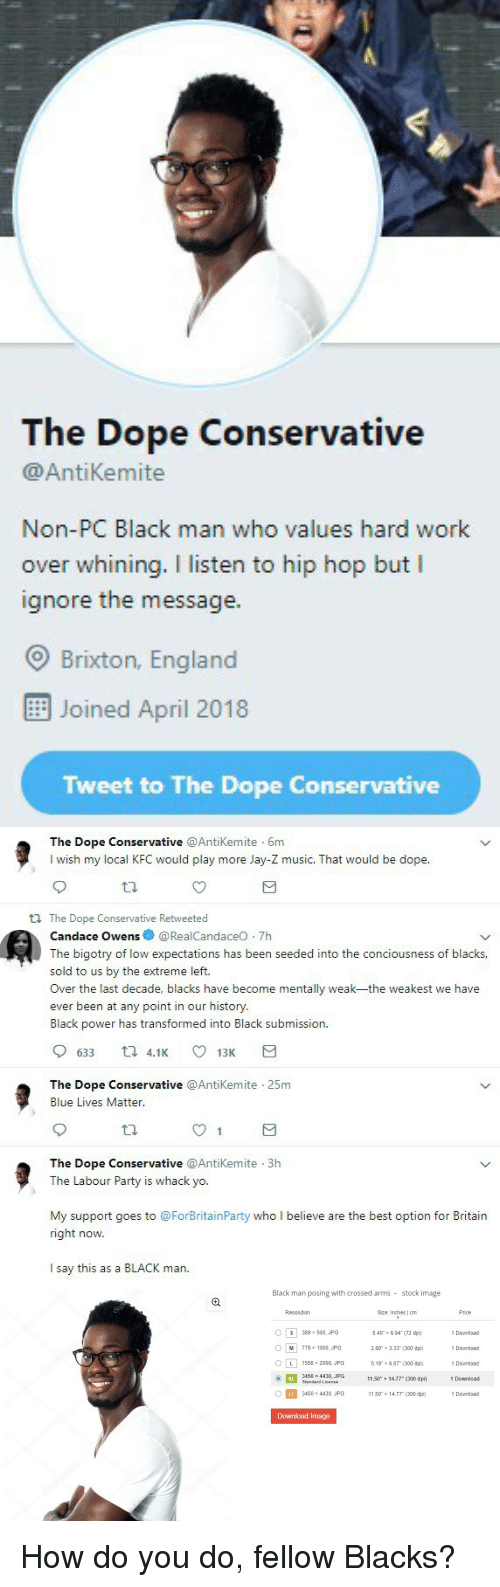 """Blackpeopletwitter, Dope, and England: The Dope Conservative  @AntiKemite  Non-PC Black man who values hard work  over whining. I listen to hip hop but I  ignore the message.  O Brixton, England  Joined April 2018  Tweet to The Dope Conservative   The Dope Conservative @AntiKemite 6m  I wish my local KFC would play more Jay-Z music. That would be dope  tl The Dope Conservative Retweeted  Candace Owens@RealCandaceO 7h  The bigotry of low expectations has been seeded into the conciousness of blacks,  sold to us by the extreme left.  Over the last decade, blacks have become mentally weak-the weakest we have  ever been at any point in our history  Black power has transformed into Black submission.  633 t 4.1 13K  The Dope Conservative @Antikemite 25m  Blue Lives Matter  The Dope Conservative @AntiKemite 3h  The Labour Party is whack yo.  My support goes to @ForBritainParty who I believe are the best option for Britain  right now.  I say this as a BLACK man.   Black man posing with crossed arms stock image  Resolution  Size: Inches 